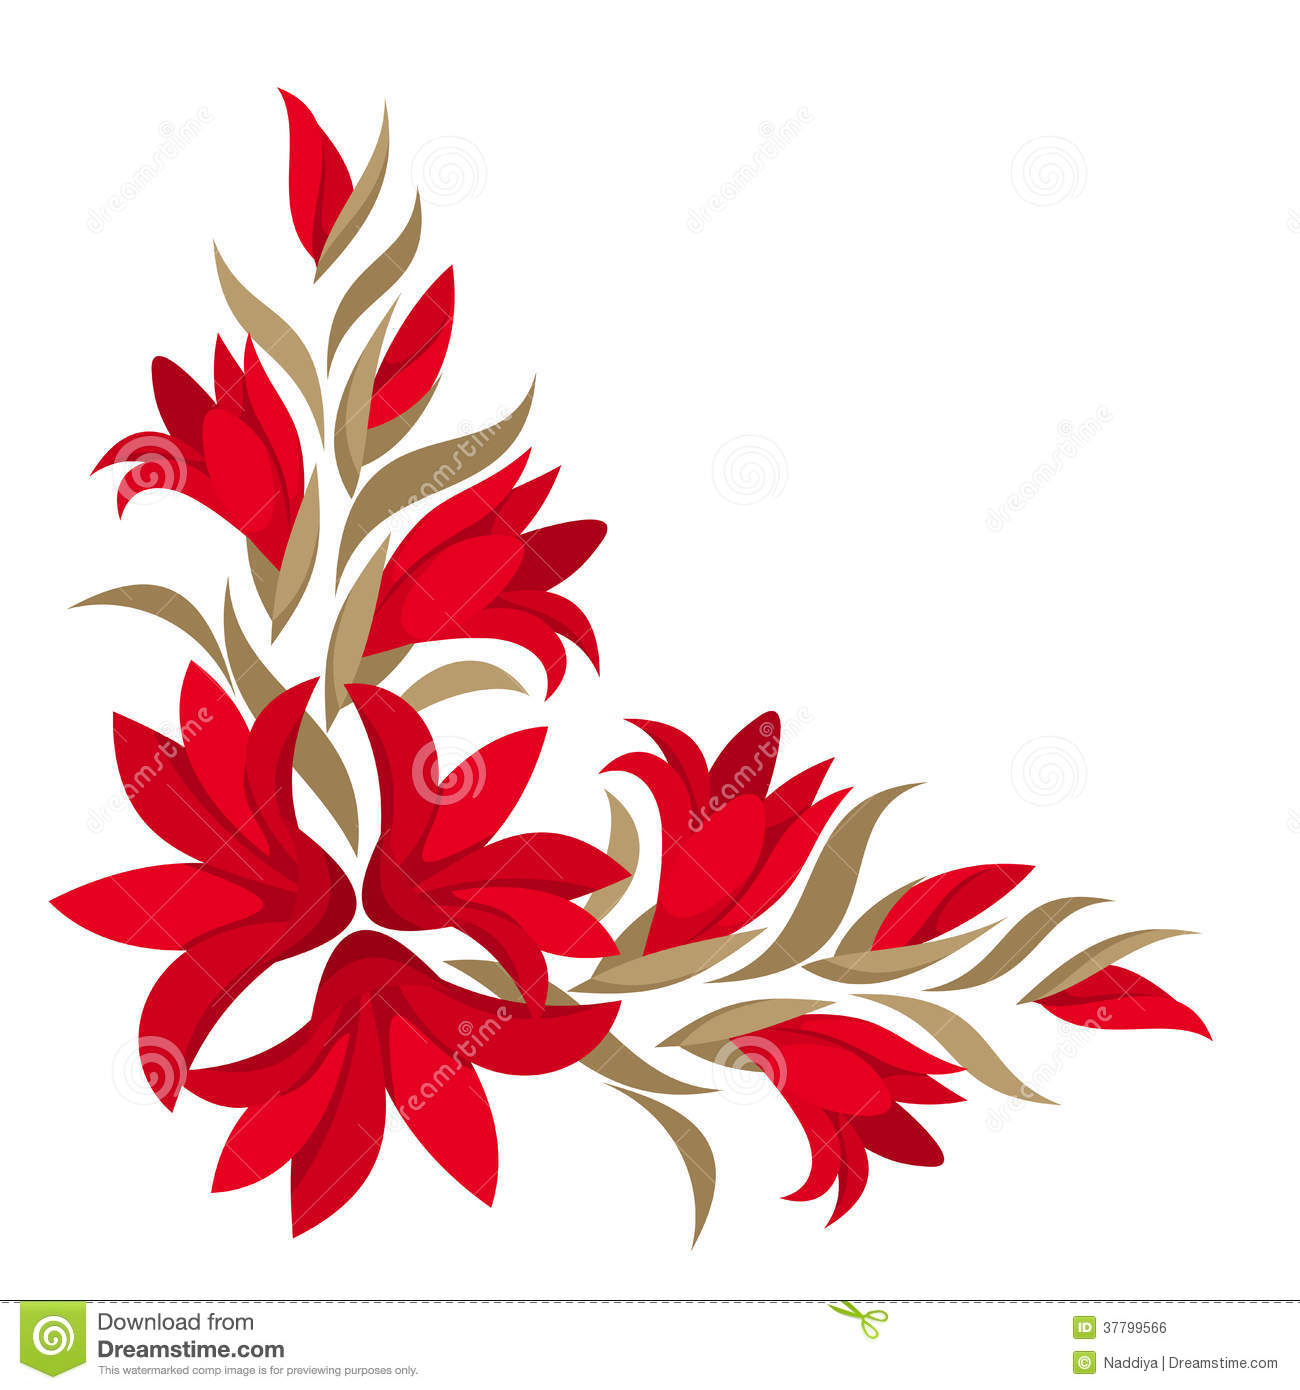 Red gladiolus flowers. stock vector. Illustration of ... - photo#34